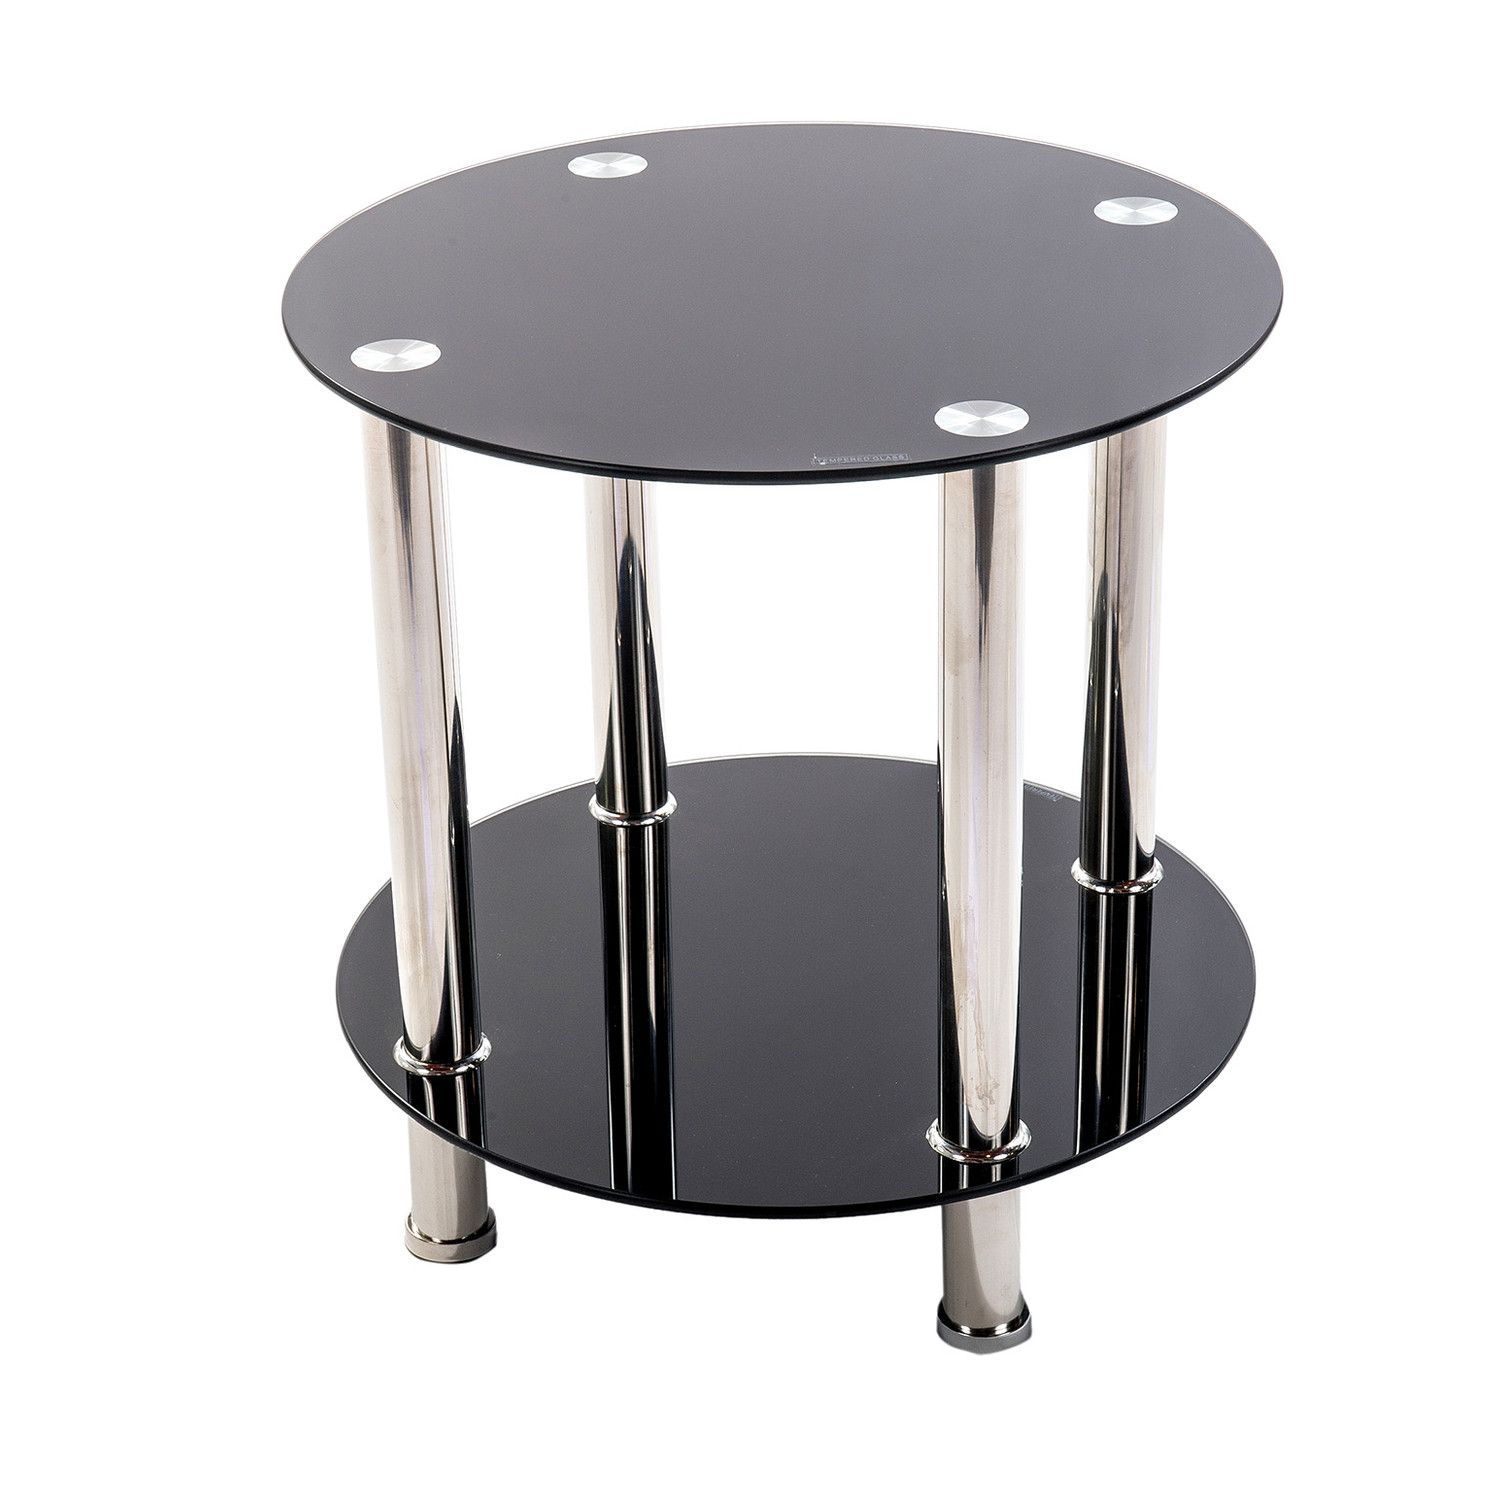 Zipcode Design Chloe Round End Table Modern End Tables End Tables Side Table [ 1500 x 1500 Pixel ]